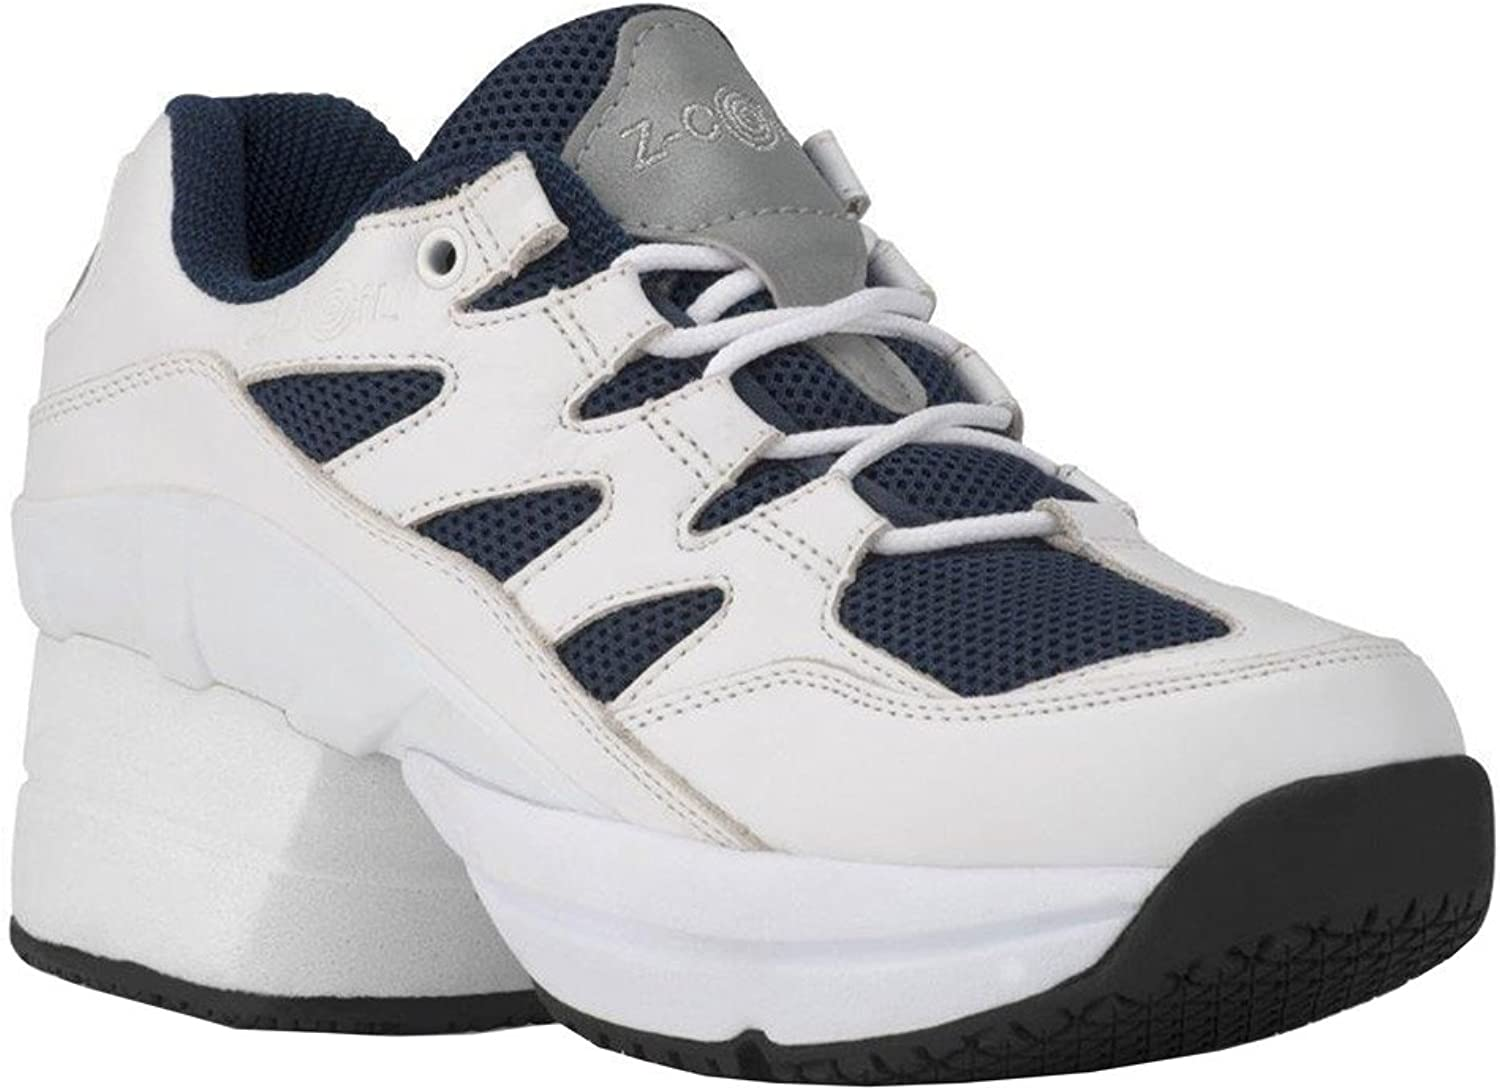 Z-CoiL Pain Relief Footwear Men's Freedom Slip Resistant Enclosed Coil White-Navy Leather Tennis shoes